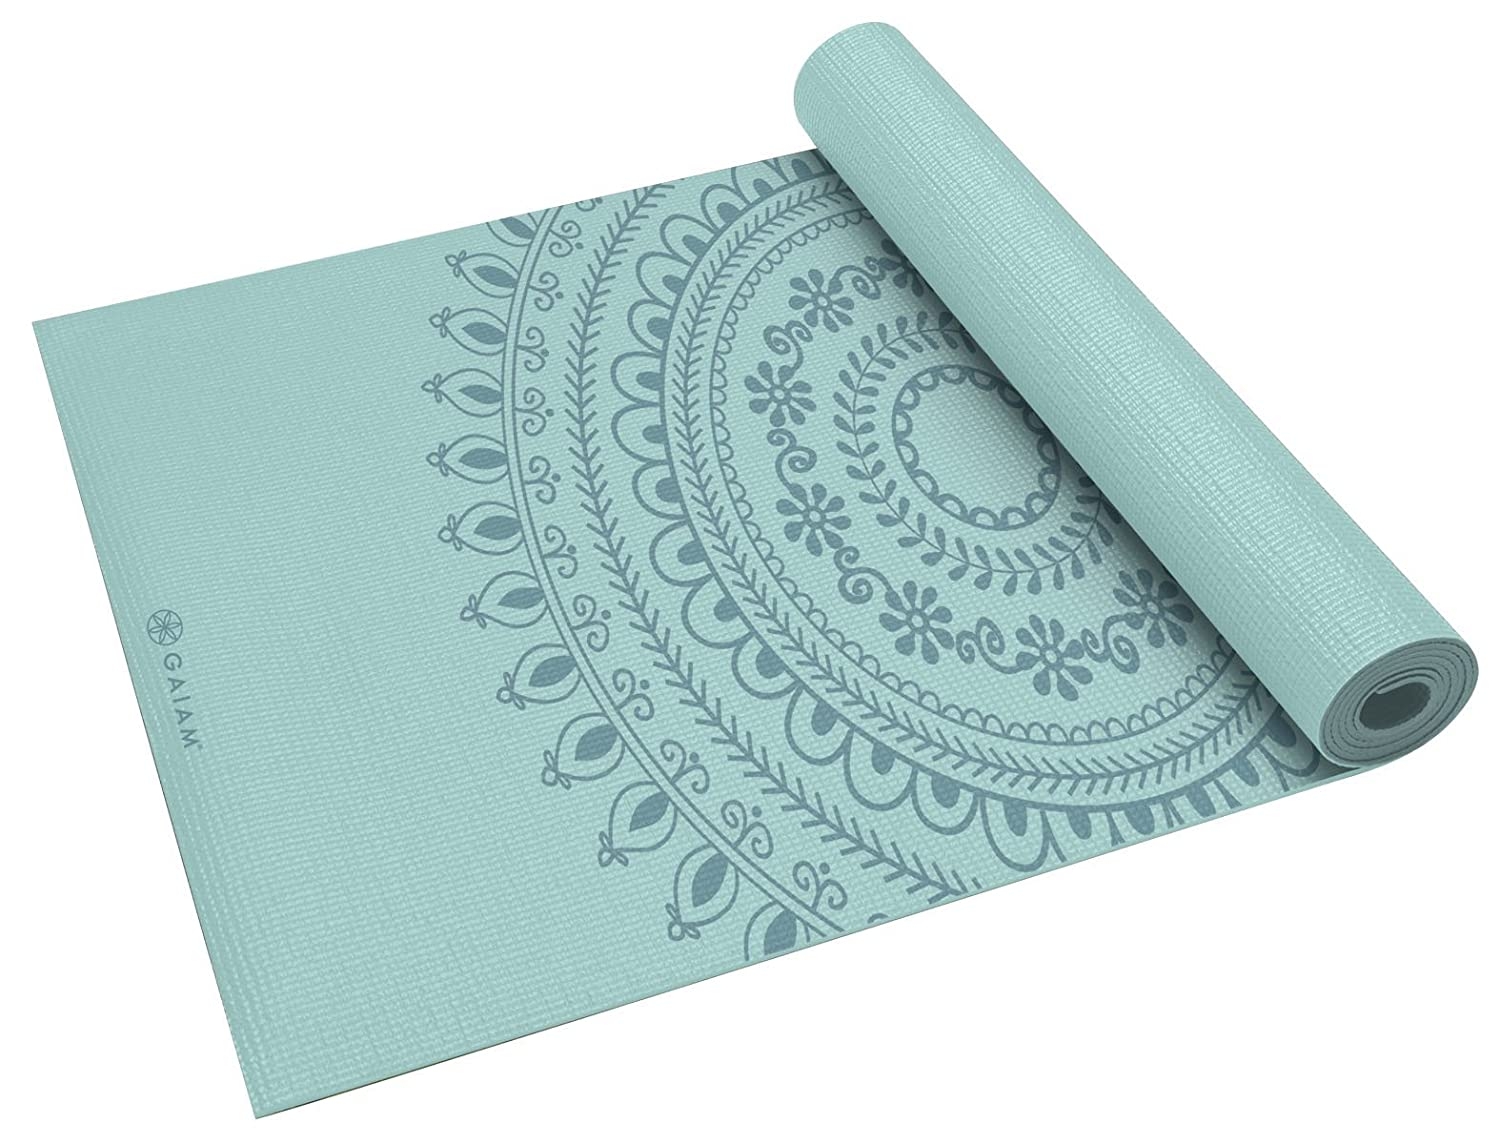 Gaiam Yoga Mat – Premium 6mm Print Extra Thick Exercise Fitness Mat for All Types of Yoga, Pilates Floor Exercises 68 x 24 x 6mm Thick